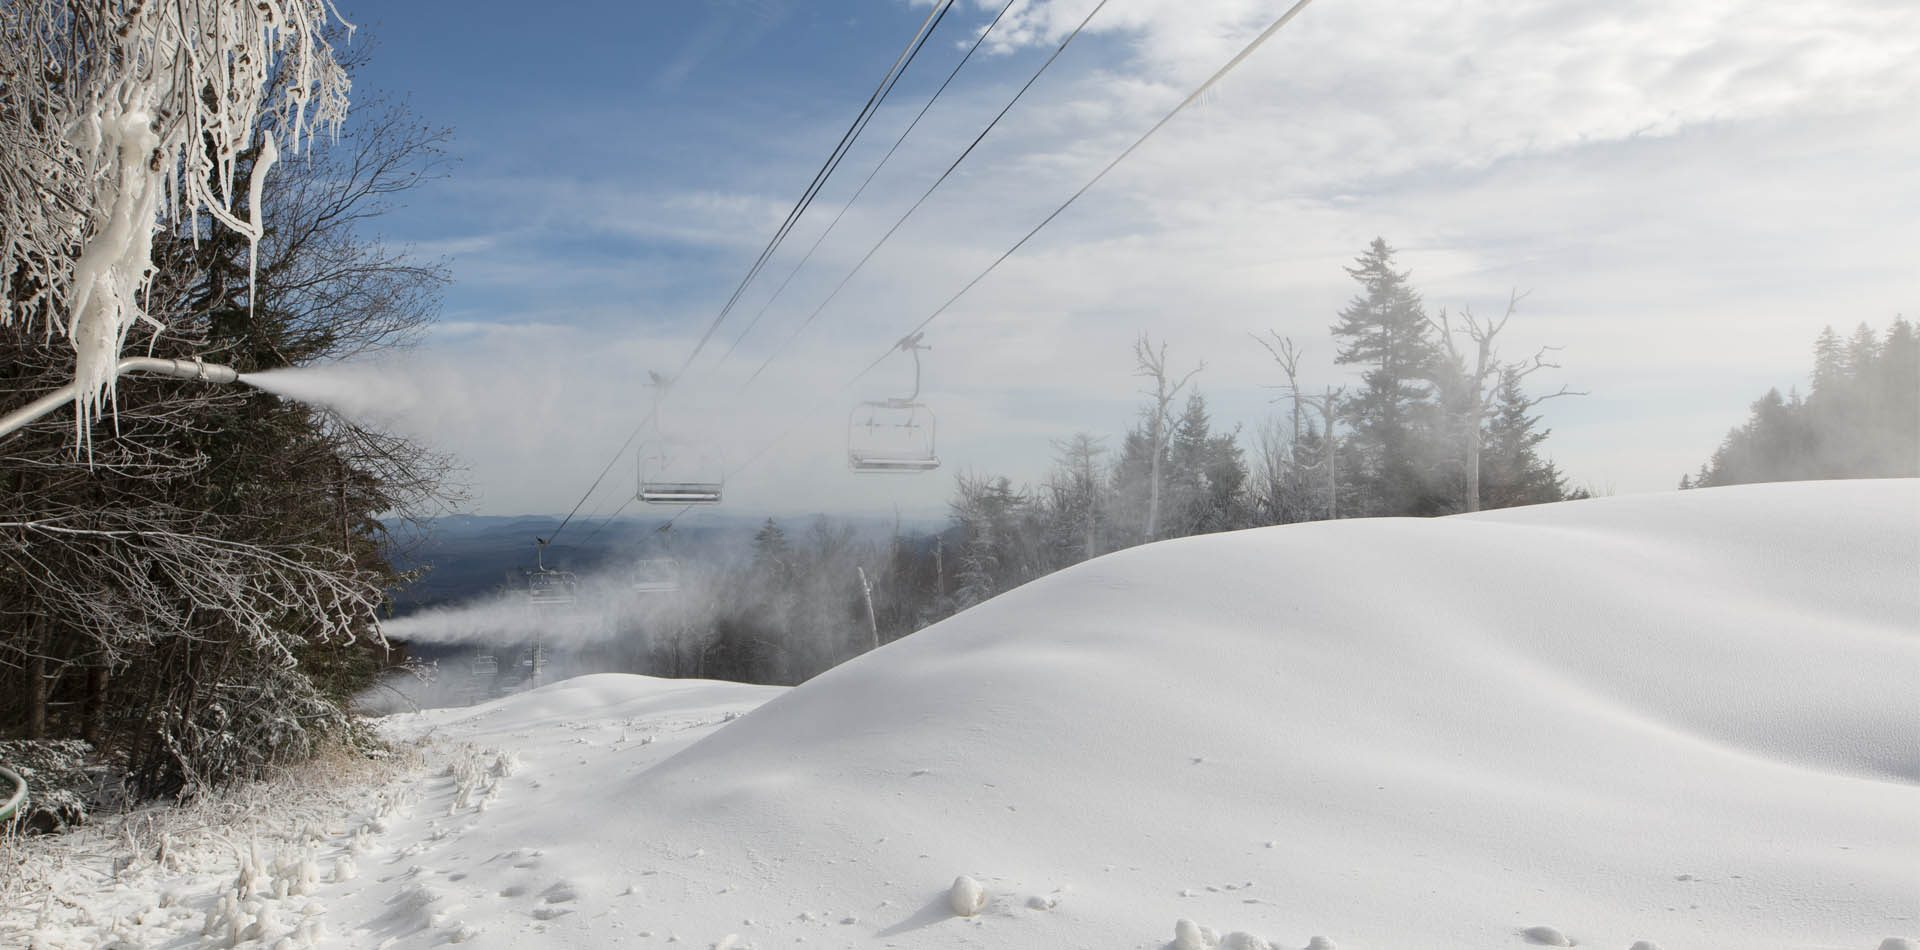 Snowmaking on the top of a ski trail on a blue sky day